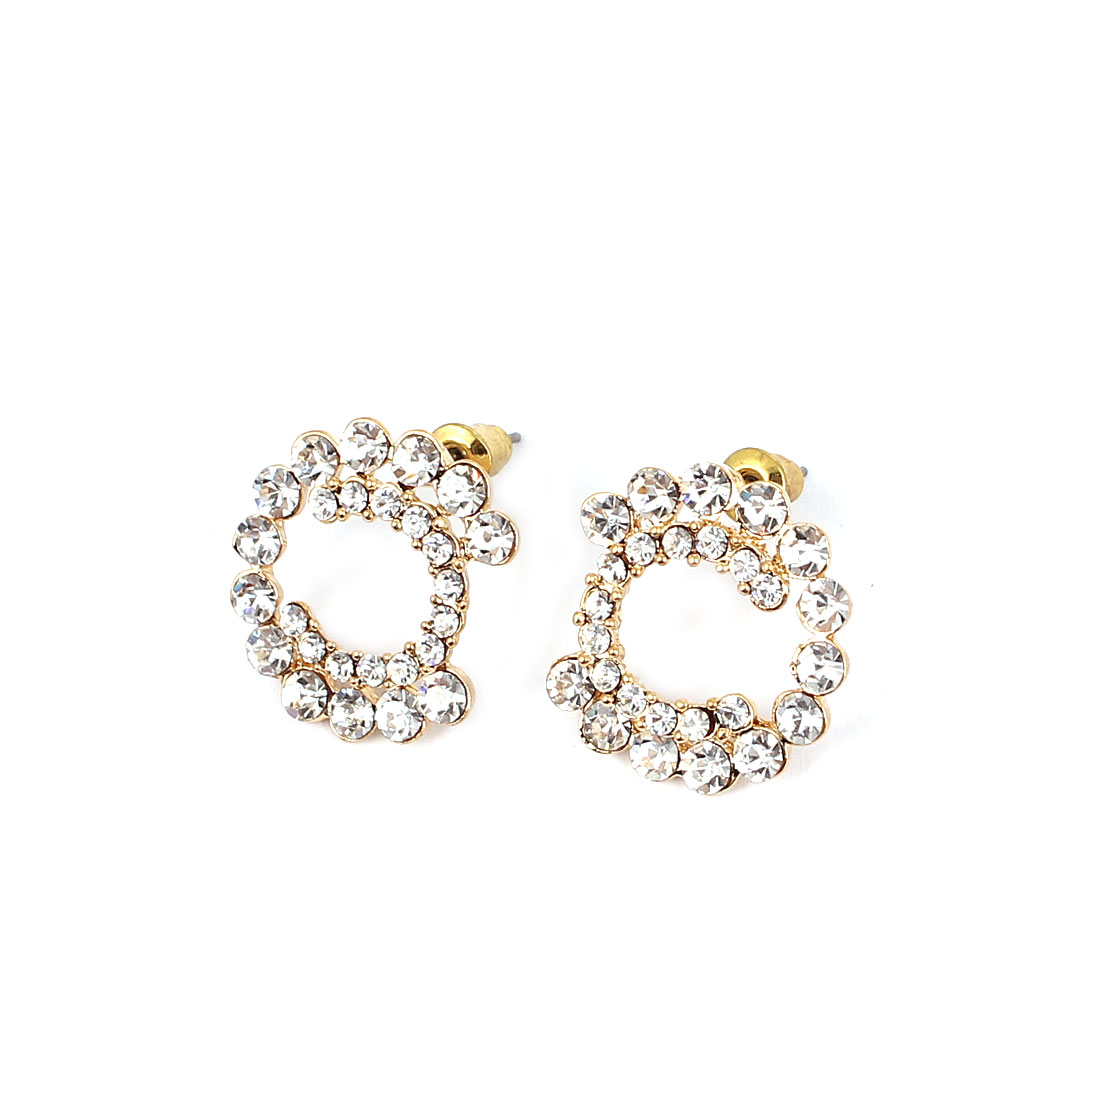 Woman Party Fashion Clear Rhinestone Inlaid Gold Tone Ring Circle Stud Earrings Ear Pins Nails Jewelry Pair